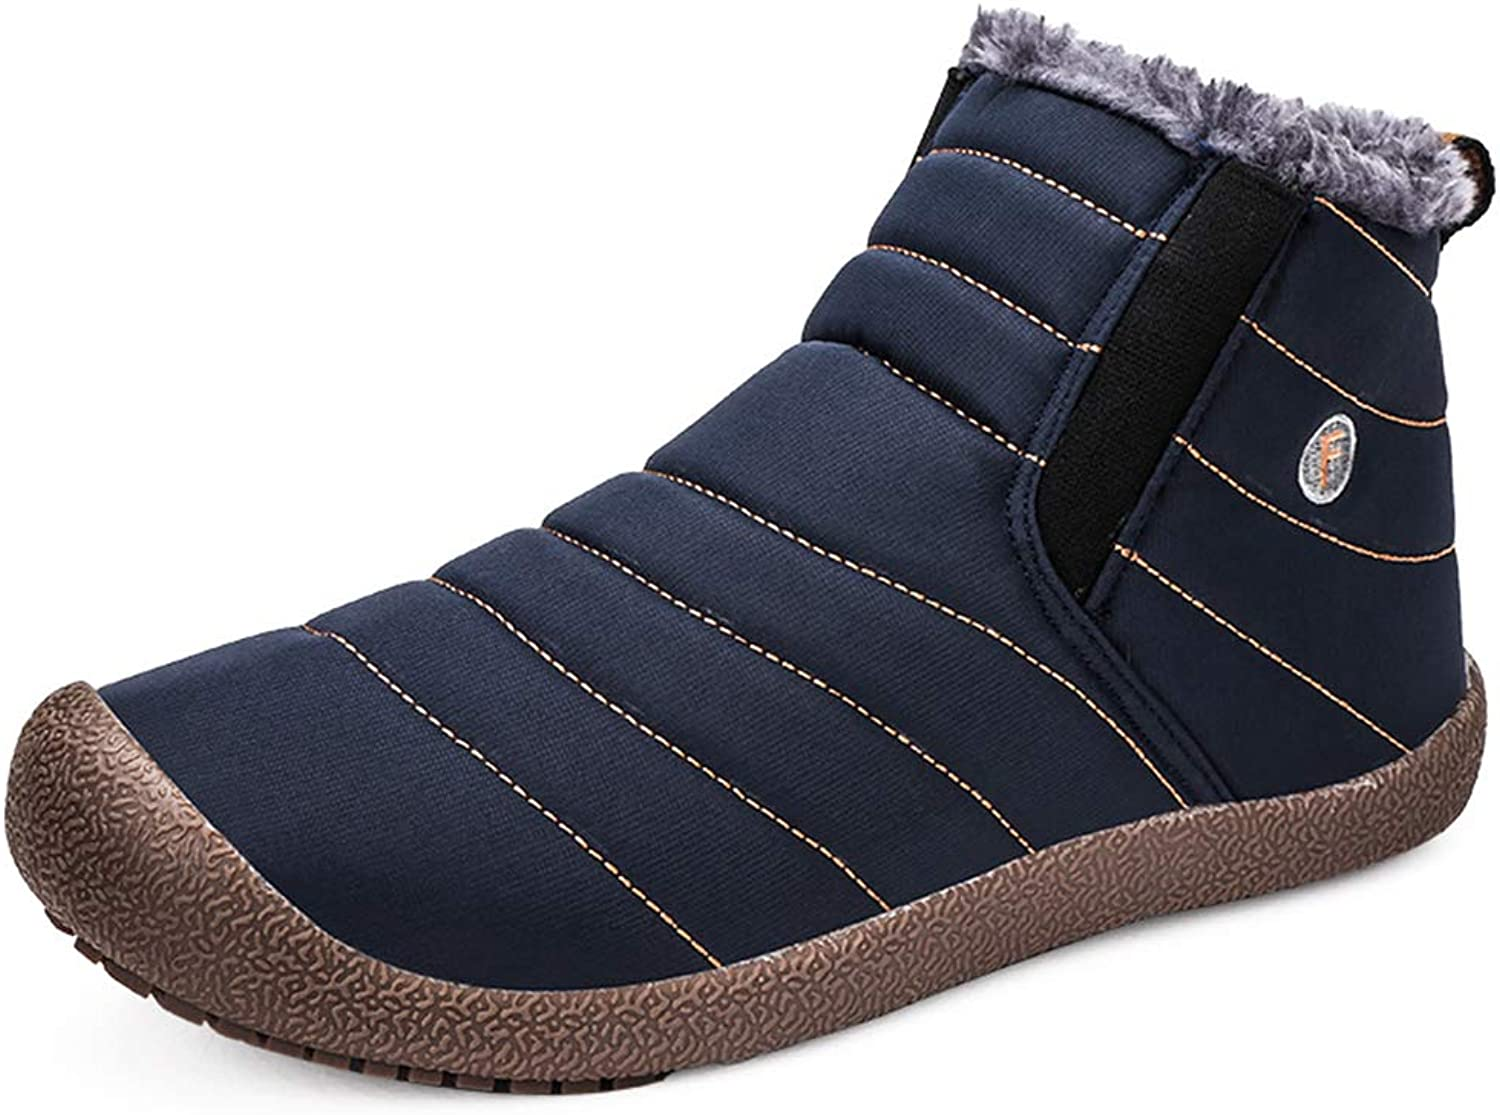 Unm Womens Studded Buckle Strap Round Toe Platform Martin Boots Chunky High Heel Ankle Booties with Zipper